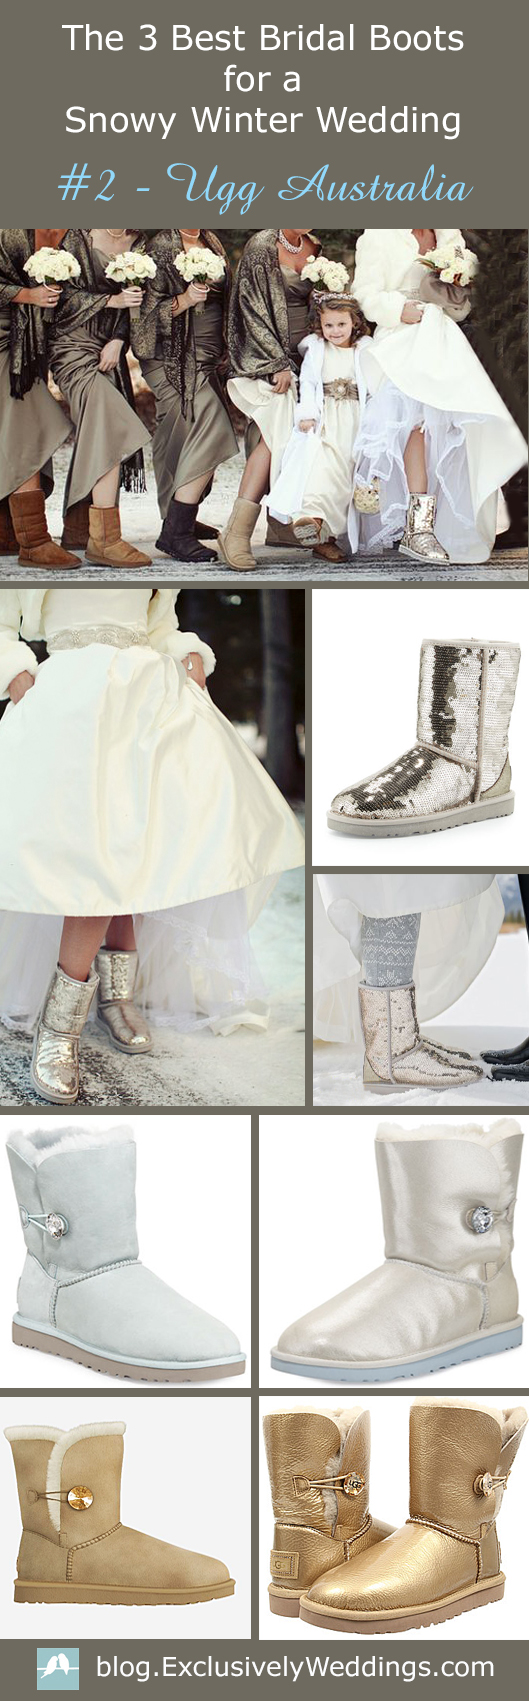 The 3 Best Bridal Boots For A Snowy Winter Wedding Ugg